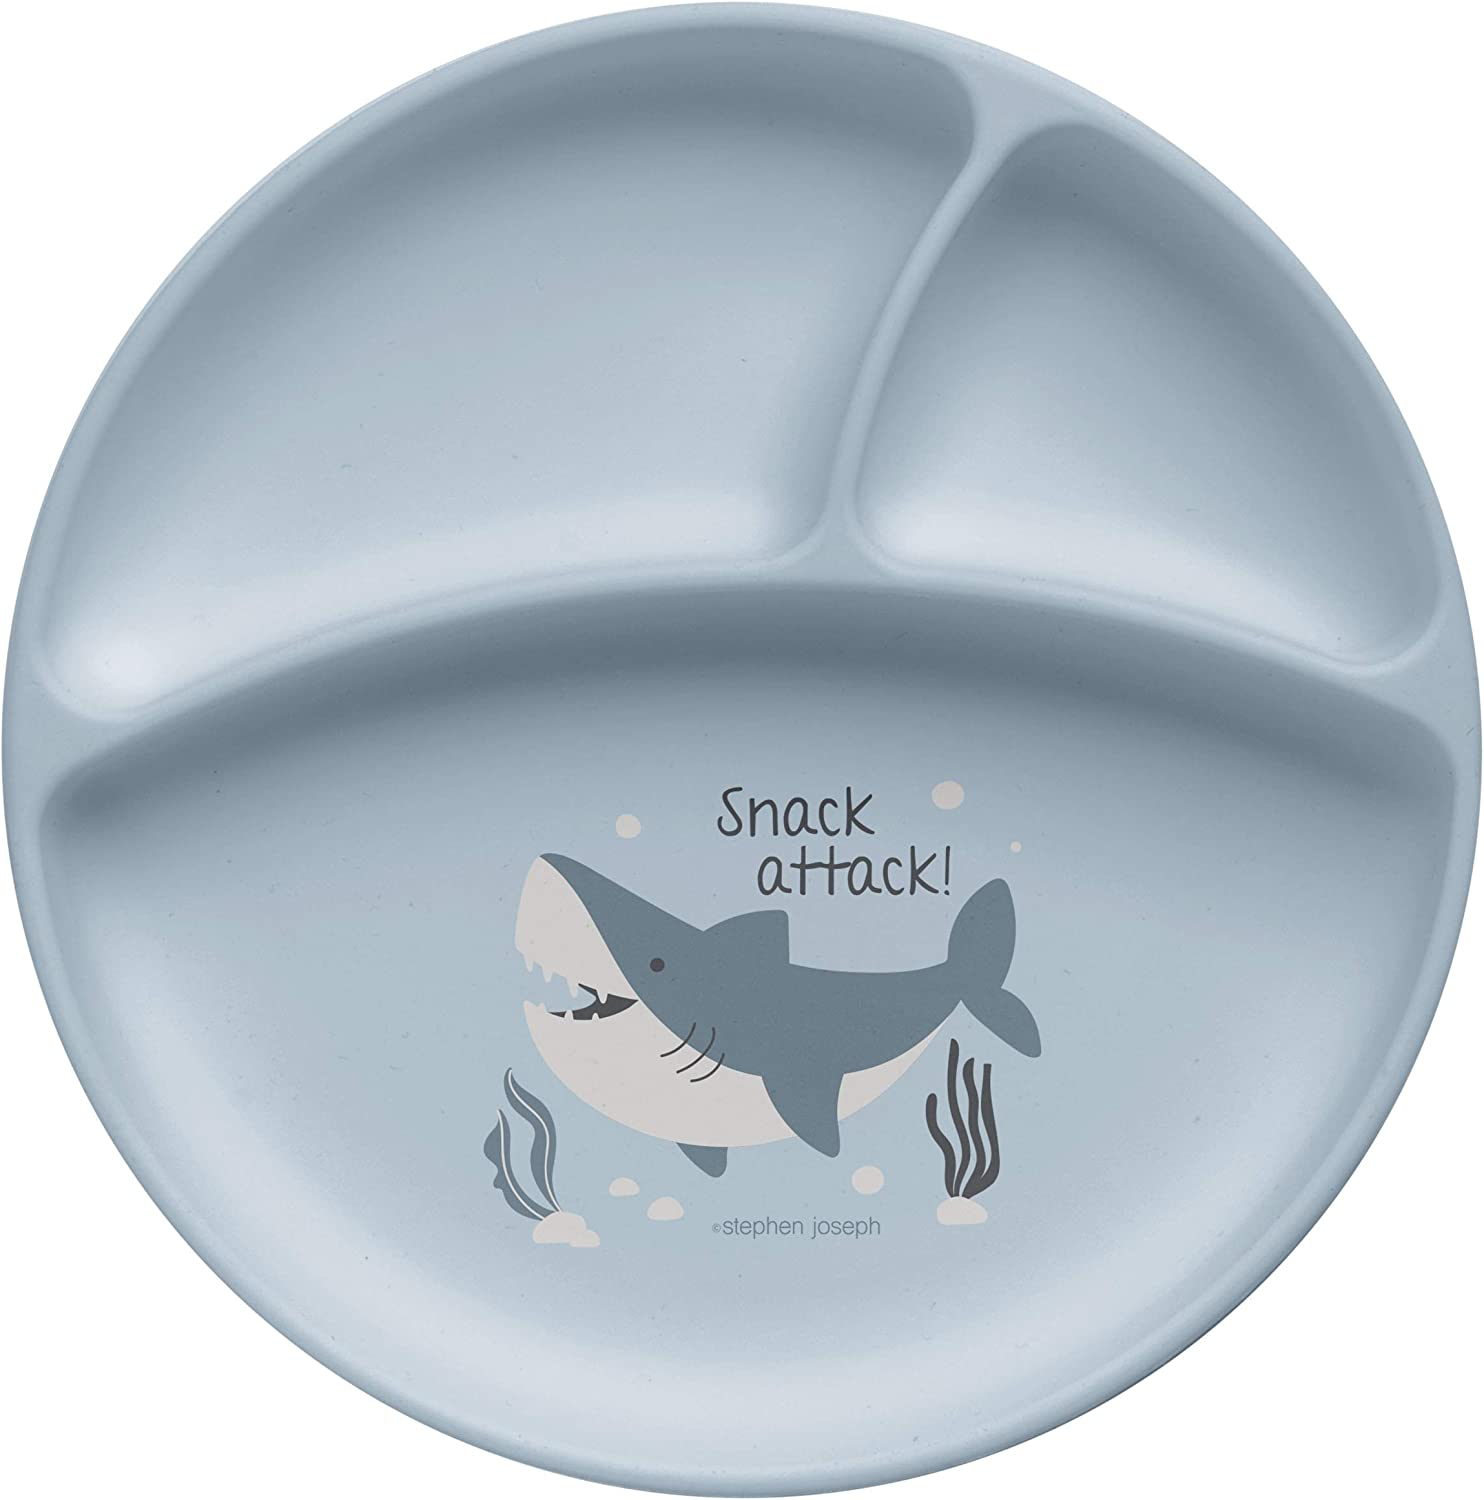 Stephen Joseph Silicone Baby Plate, One size, SHARK